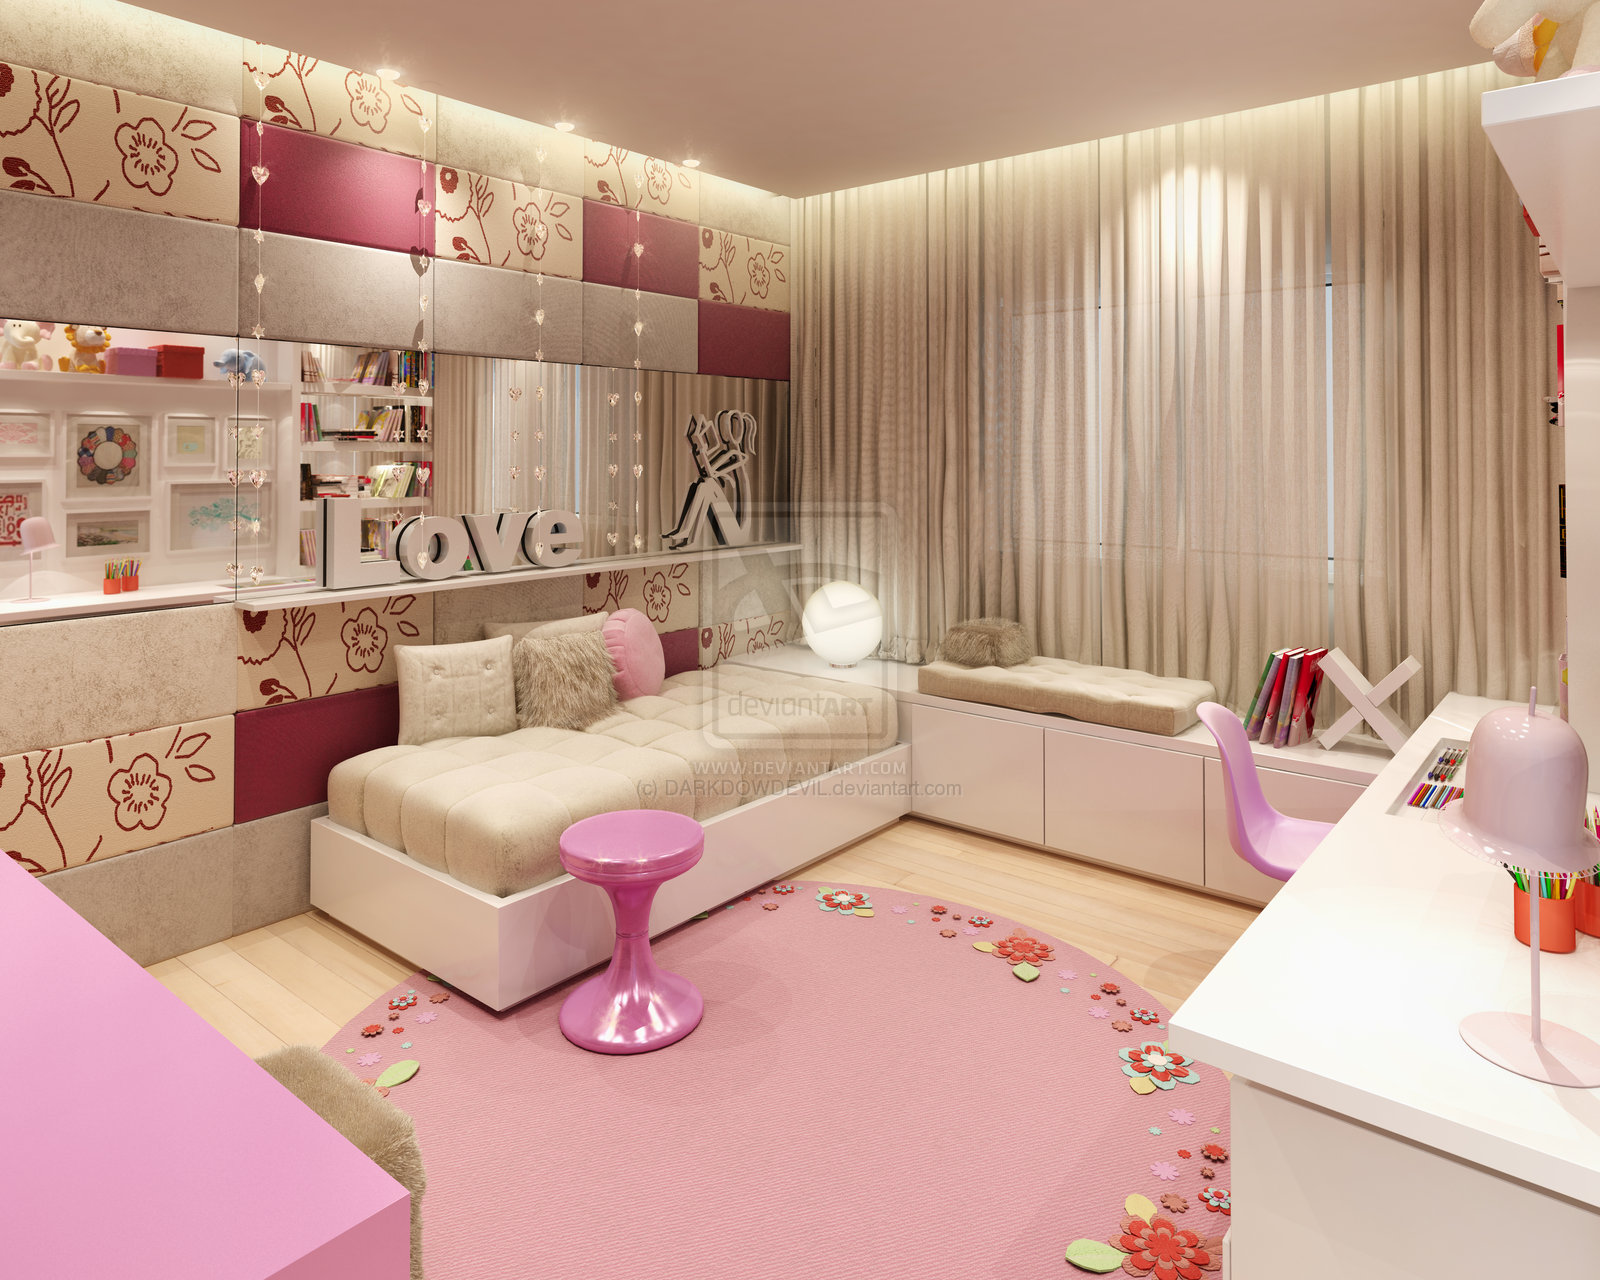 girl bedroom by DARKDOWDEVIL : pictures-of-teenage-girl-rooms - designwebi.com